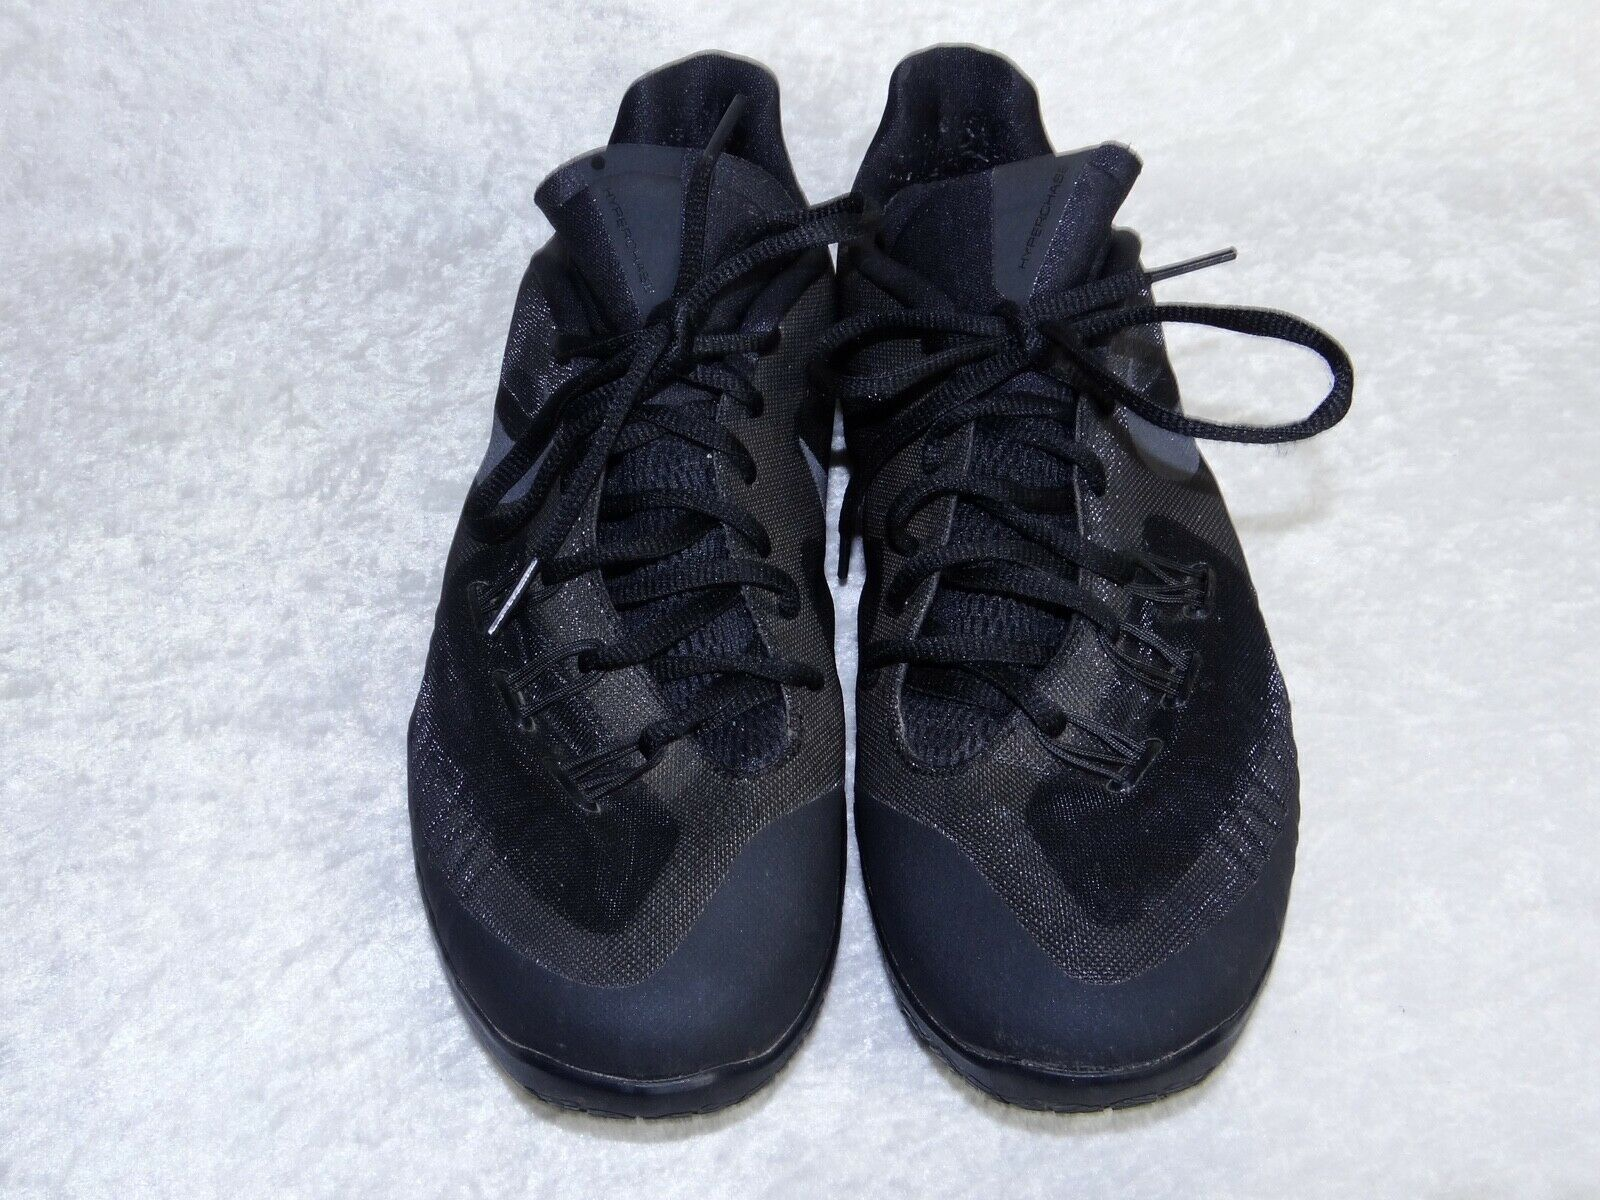 Nike Hyperchase 705363-003 size 10 Mens Basketball Sneakers Black Shoes